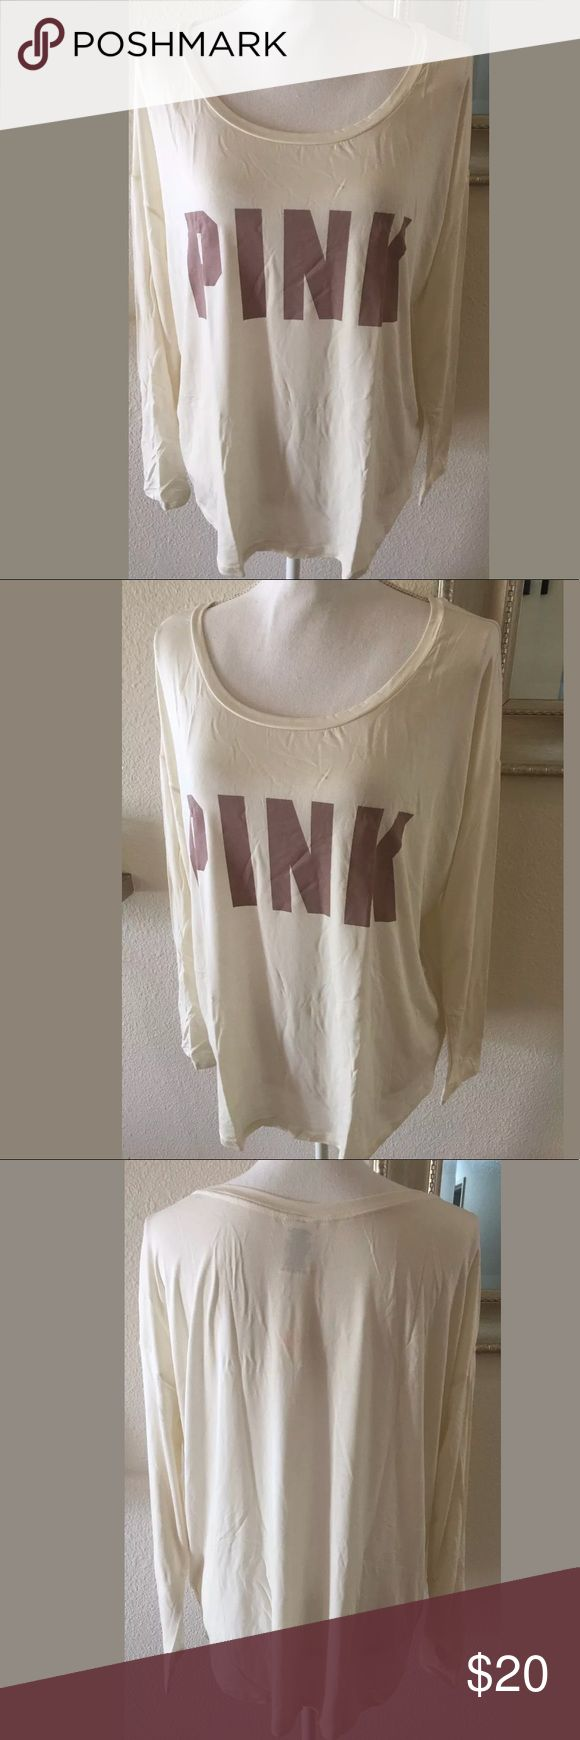 Victoria's Secret PINK Supersoft Long Sleeve Logo Victoria's Secret PINK Supersoft Long Sleeve Logo Top Size L Cream Off White  Beige  Slouchy fit   Measurements Approximate Armpit to armpit 28 inches  Shoulder to bottom 29 inches PINK Victoria's Secret Tops Tees - Long Sleeve